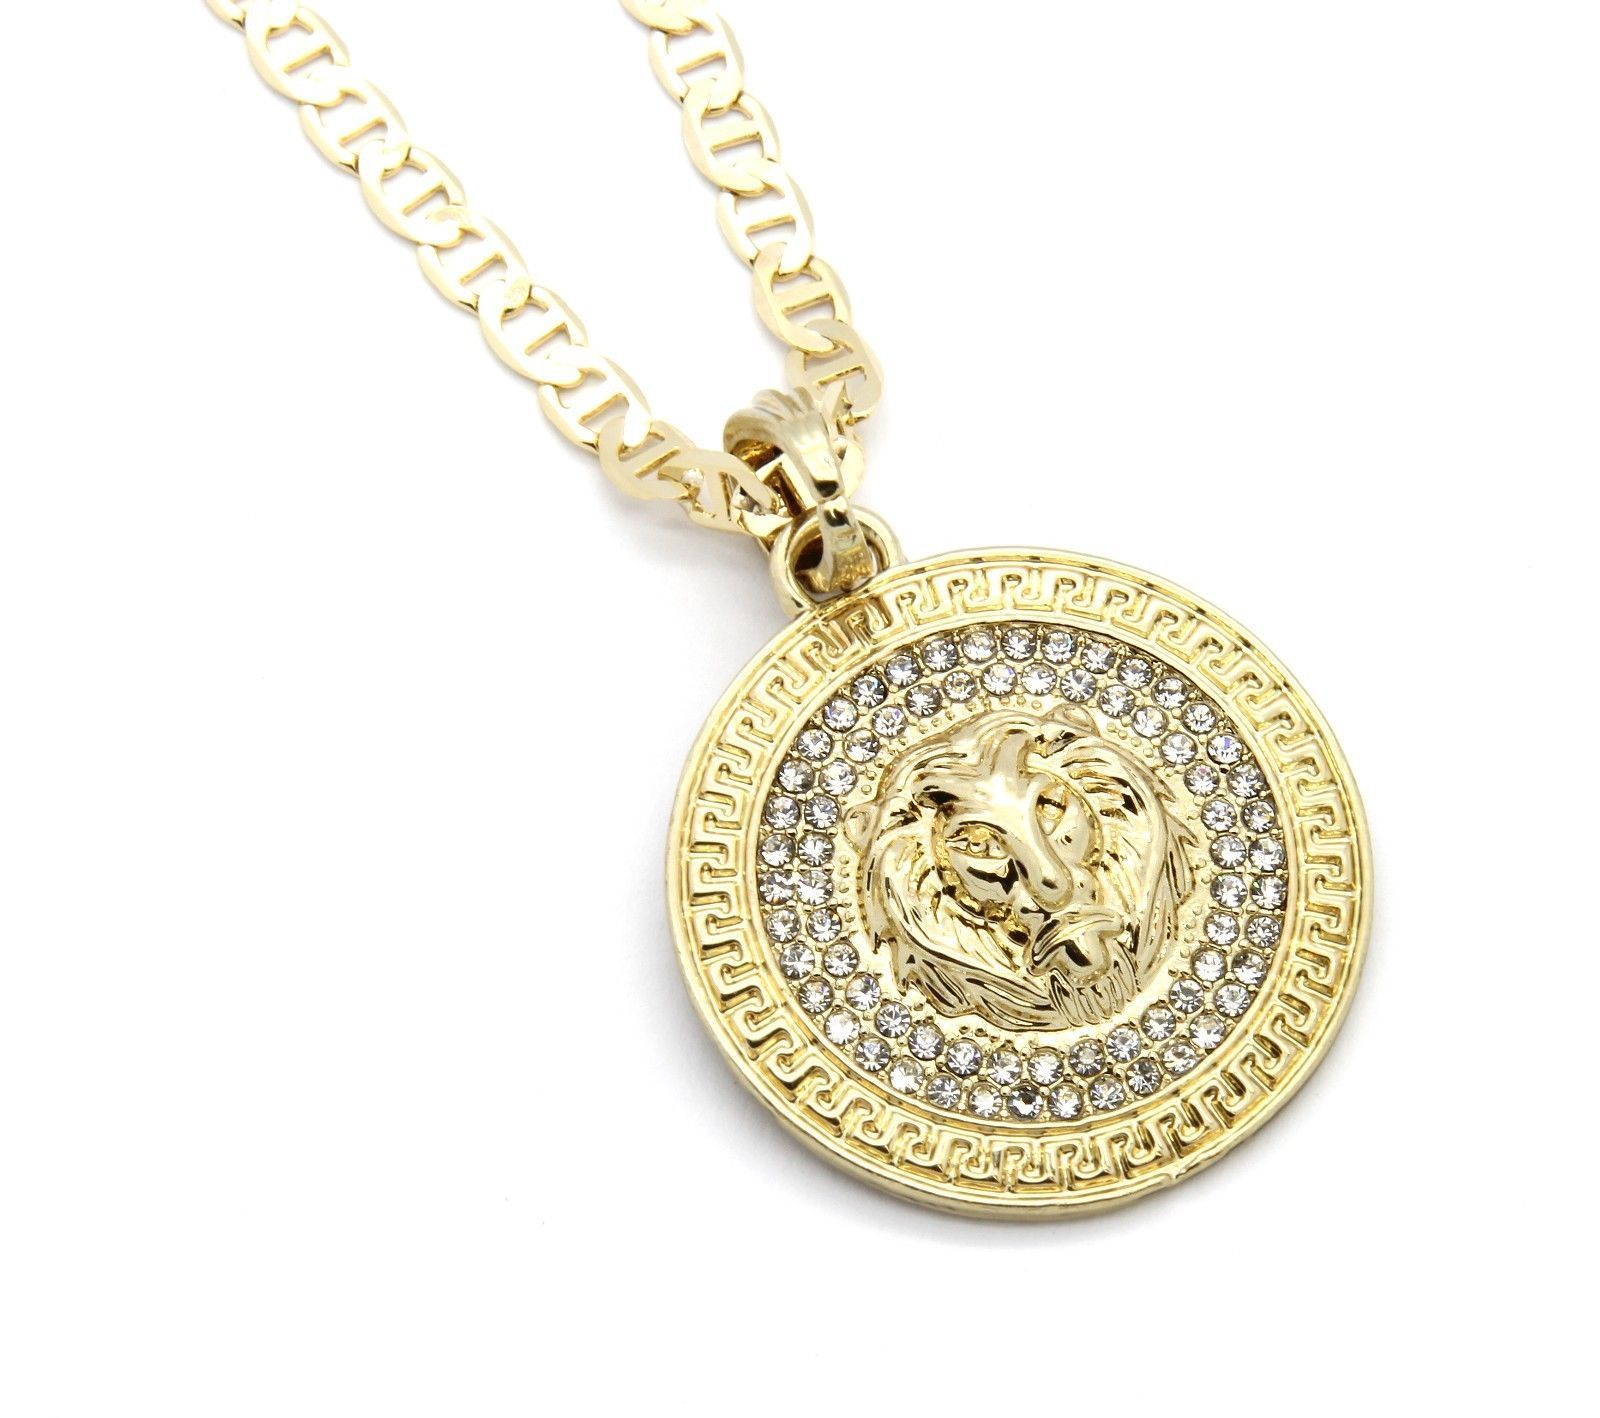 13 99 Mens Medallion Pattern Lion Gold Plated 24 Gucci Chain Pendant Necklace Ebay Fashion Gold Chains For Men Mens Necklace Pendant Chains For Men